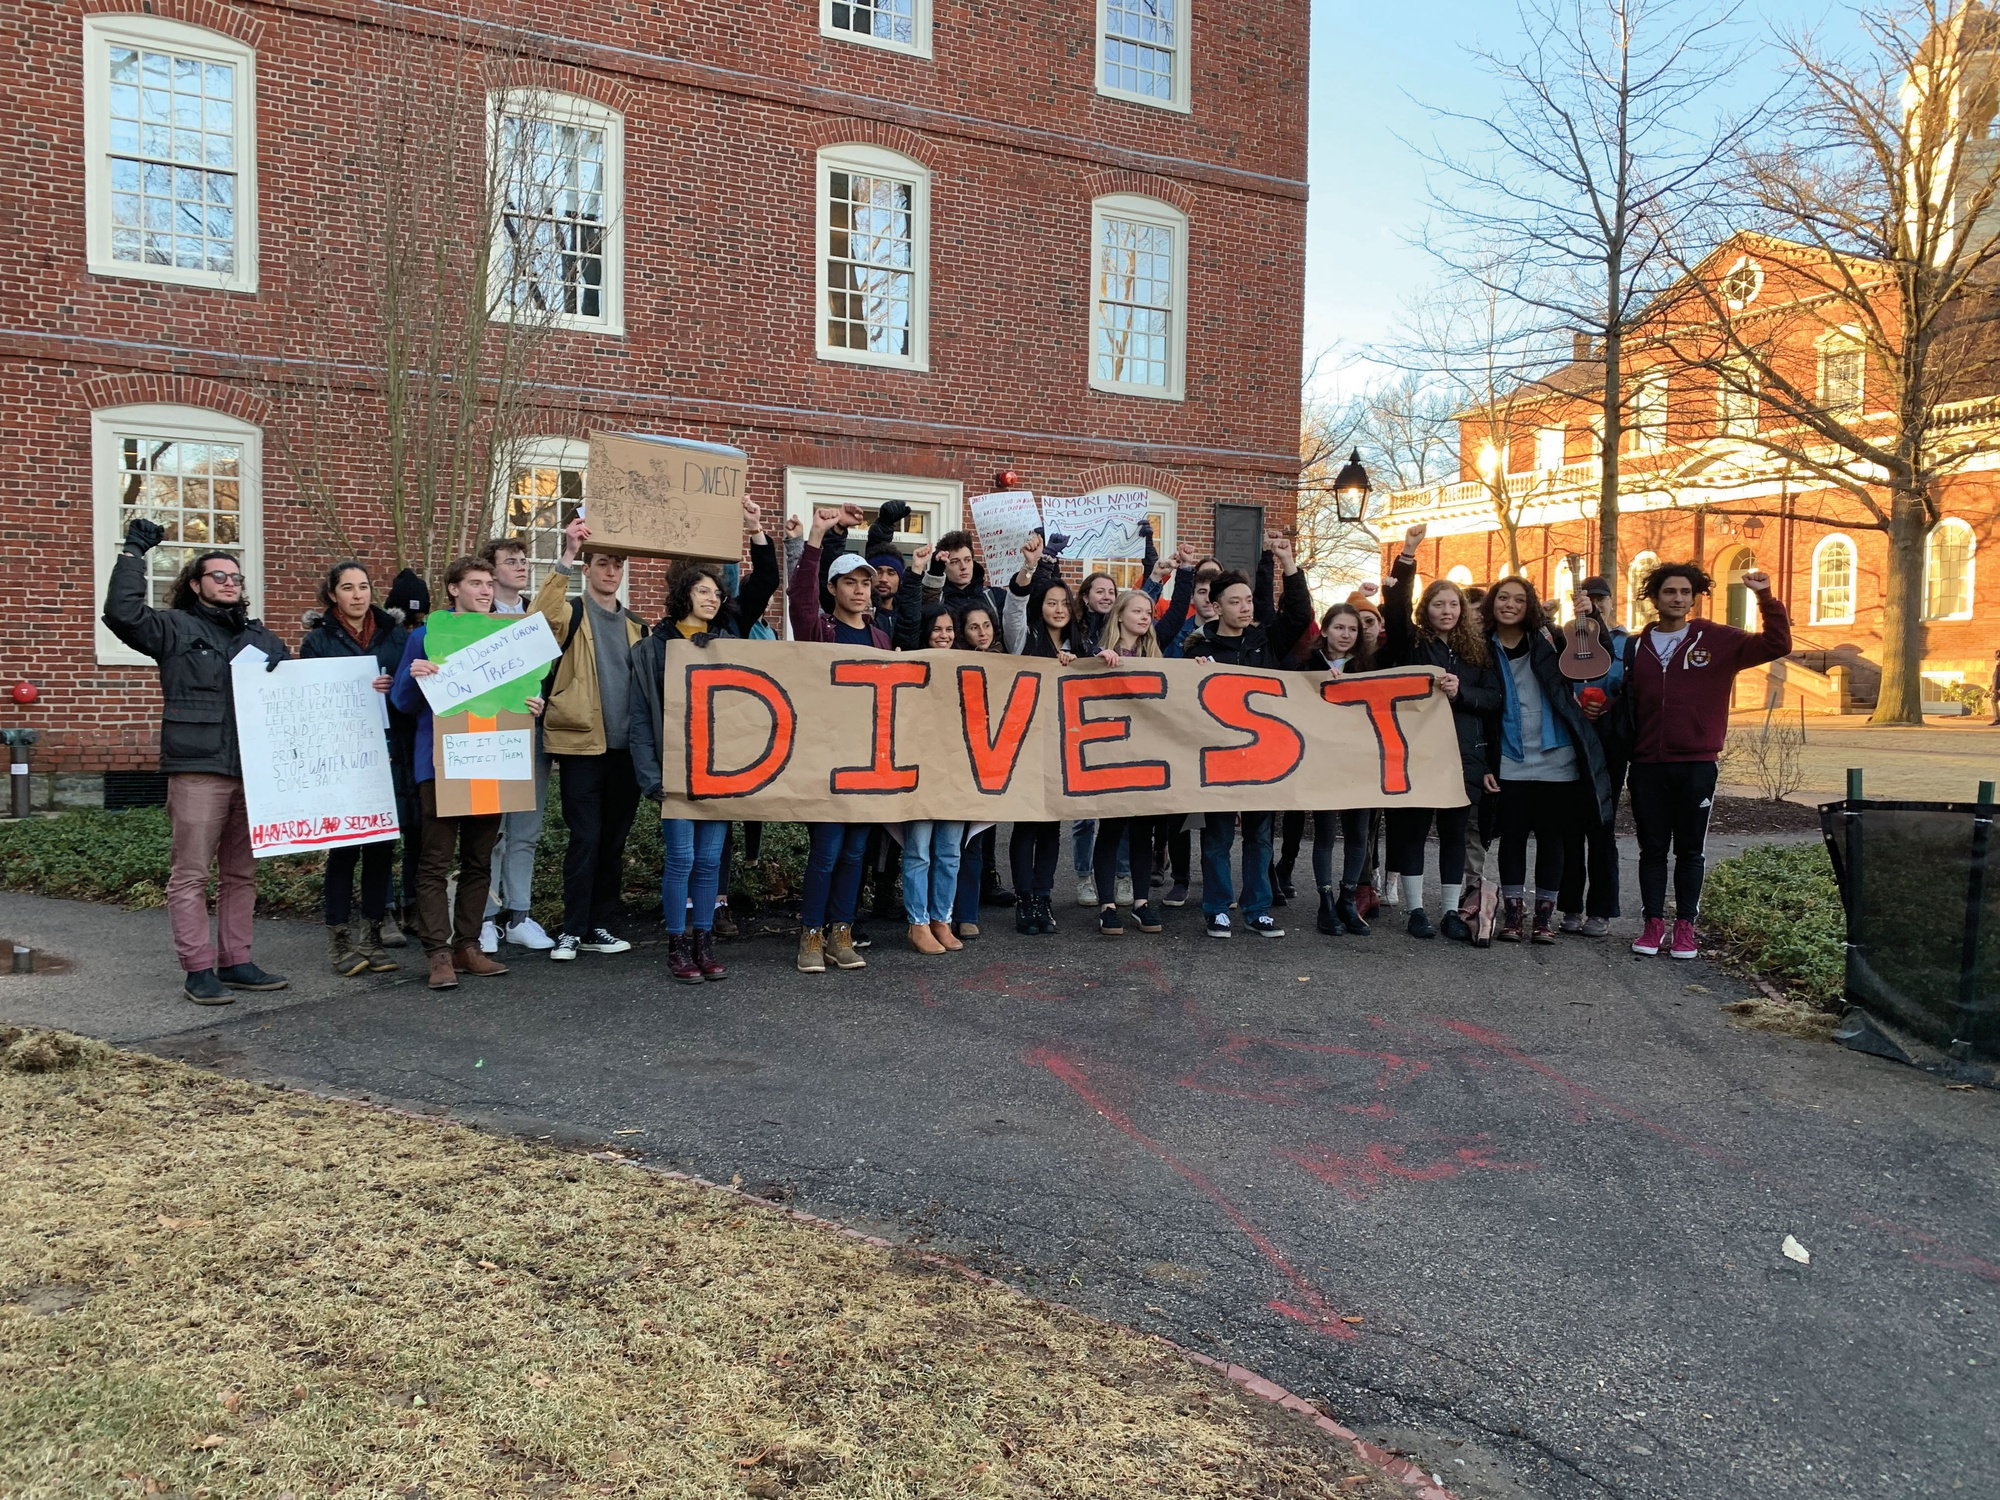 A group of University affiliates marched from Harvard Square to the Yard Friday pushing for administrators to consider divesting from fossil fuels.